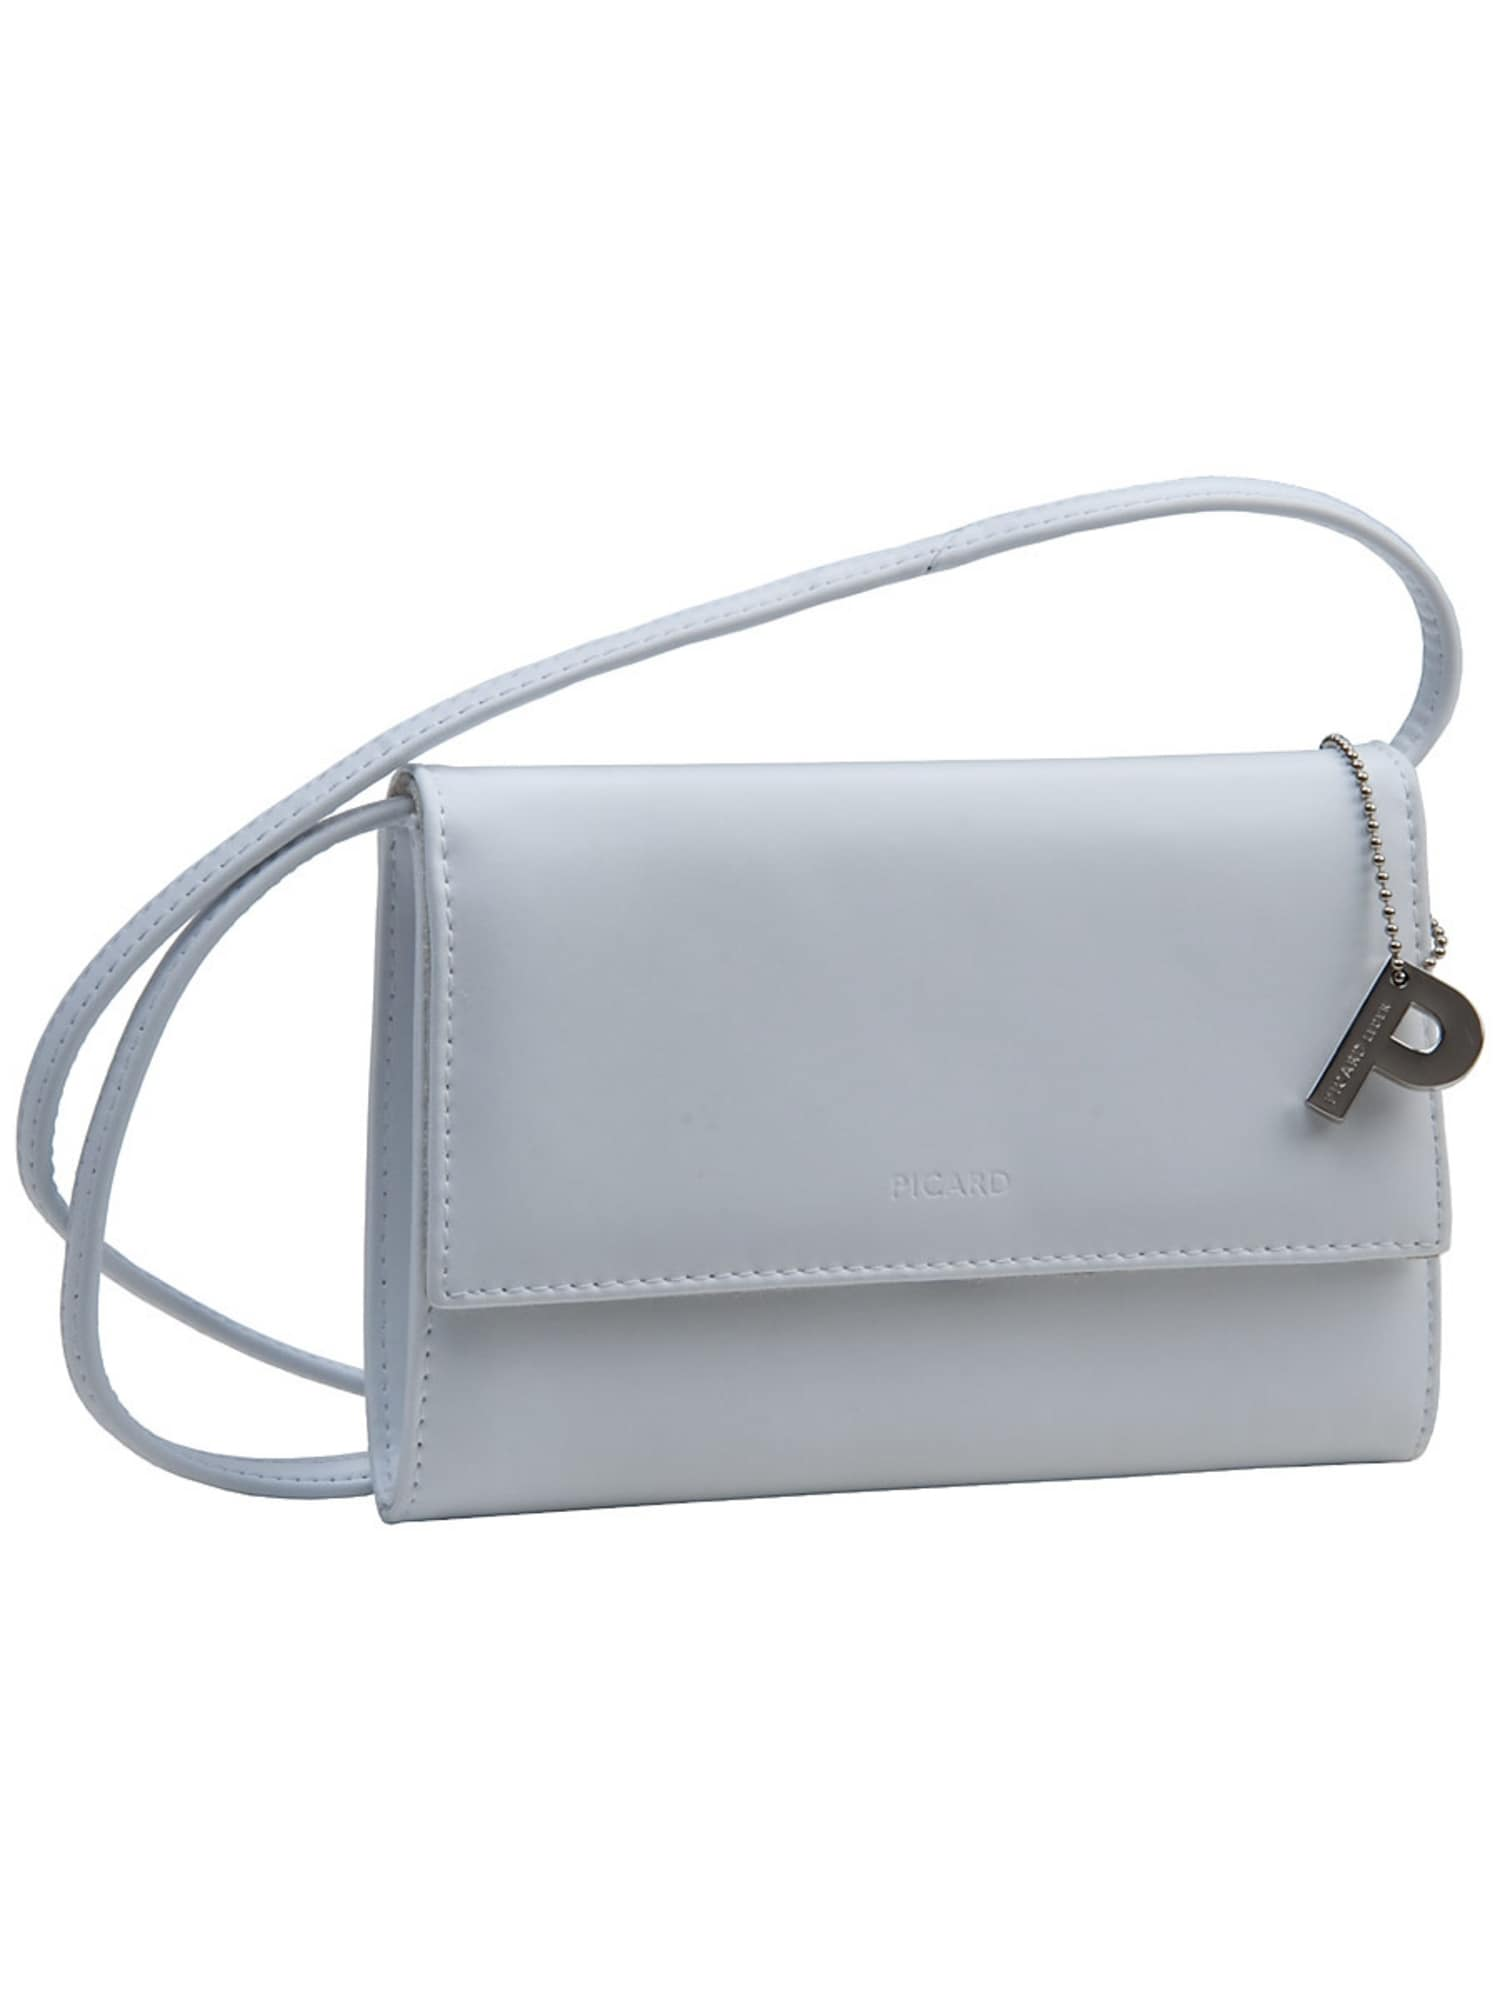 Abendtasche | Taschen > Handtaschen > Abendtaschen | Weiß | Picard